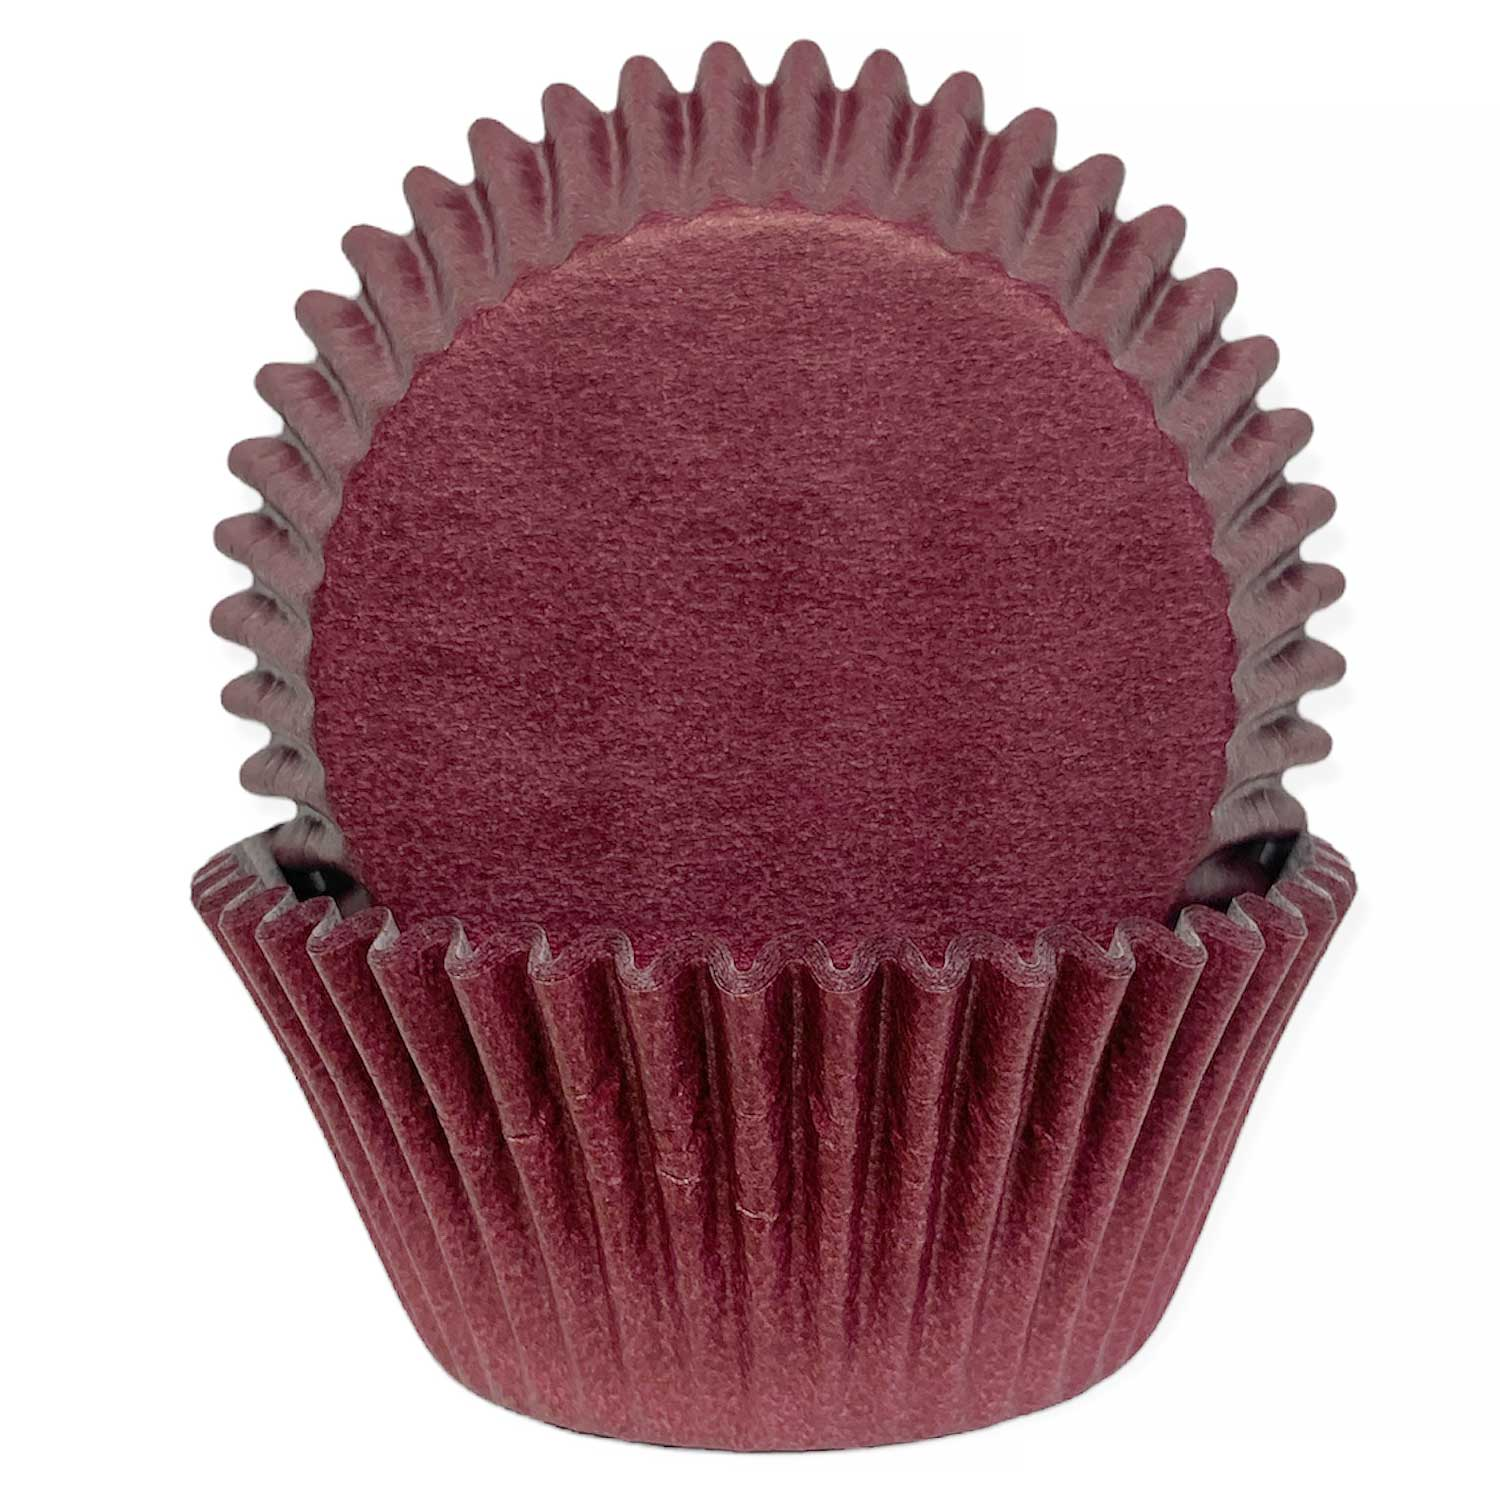 Solid Burgundy Standard Baking Cups